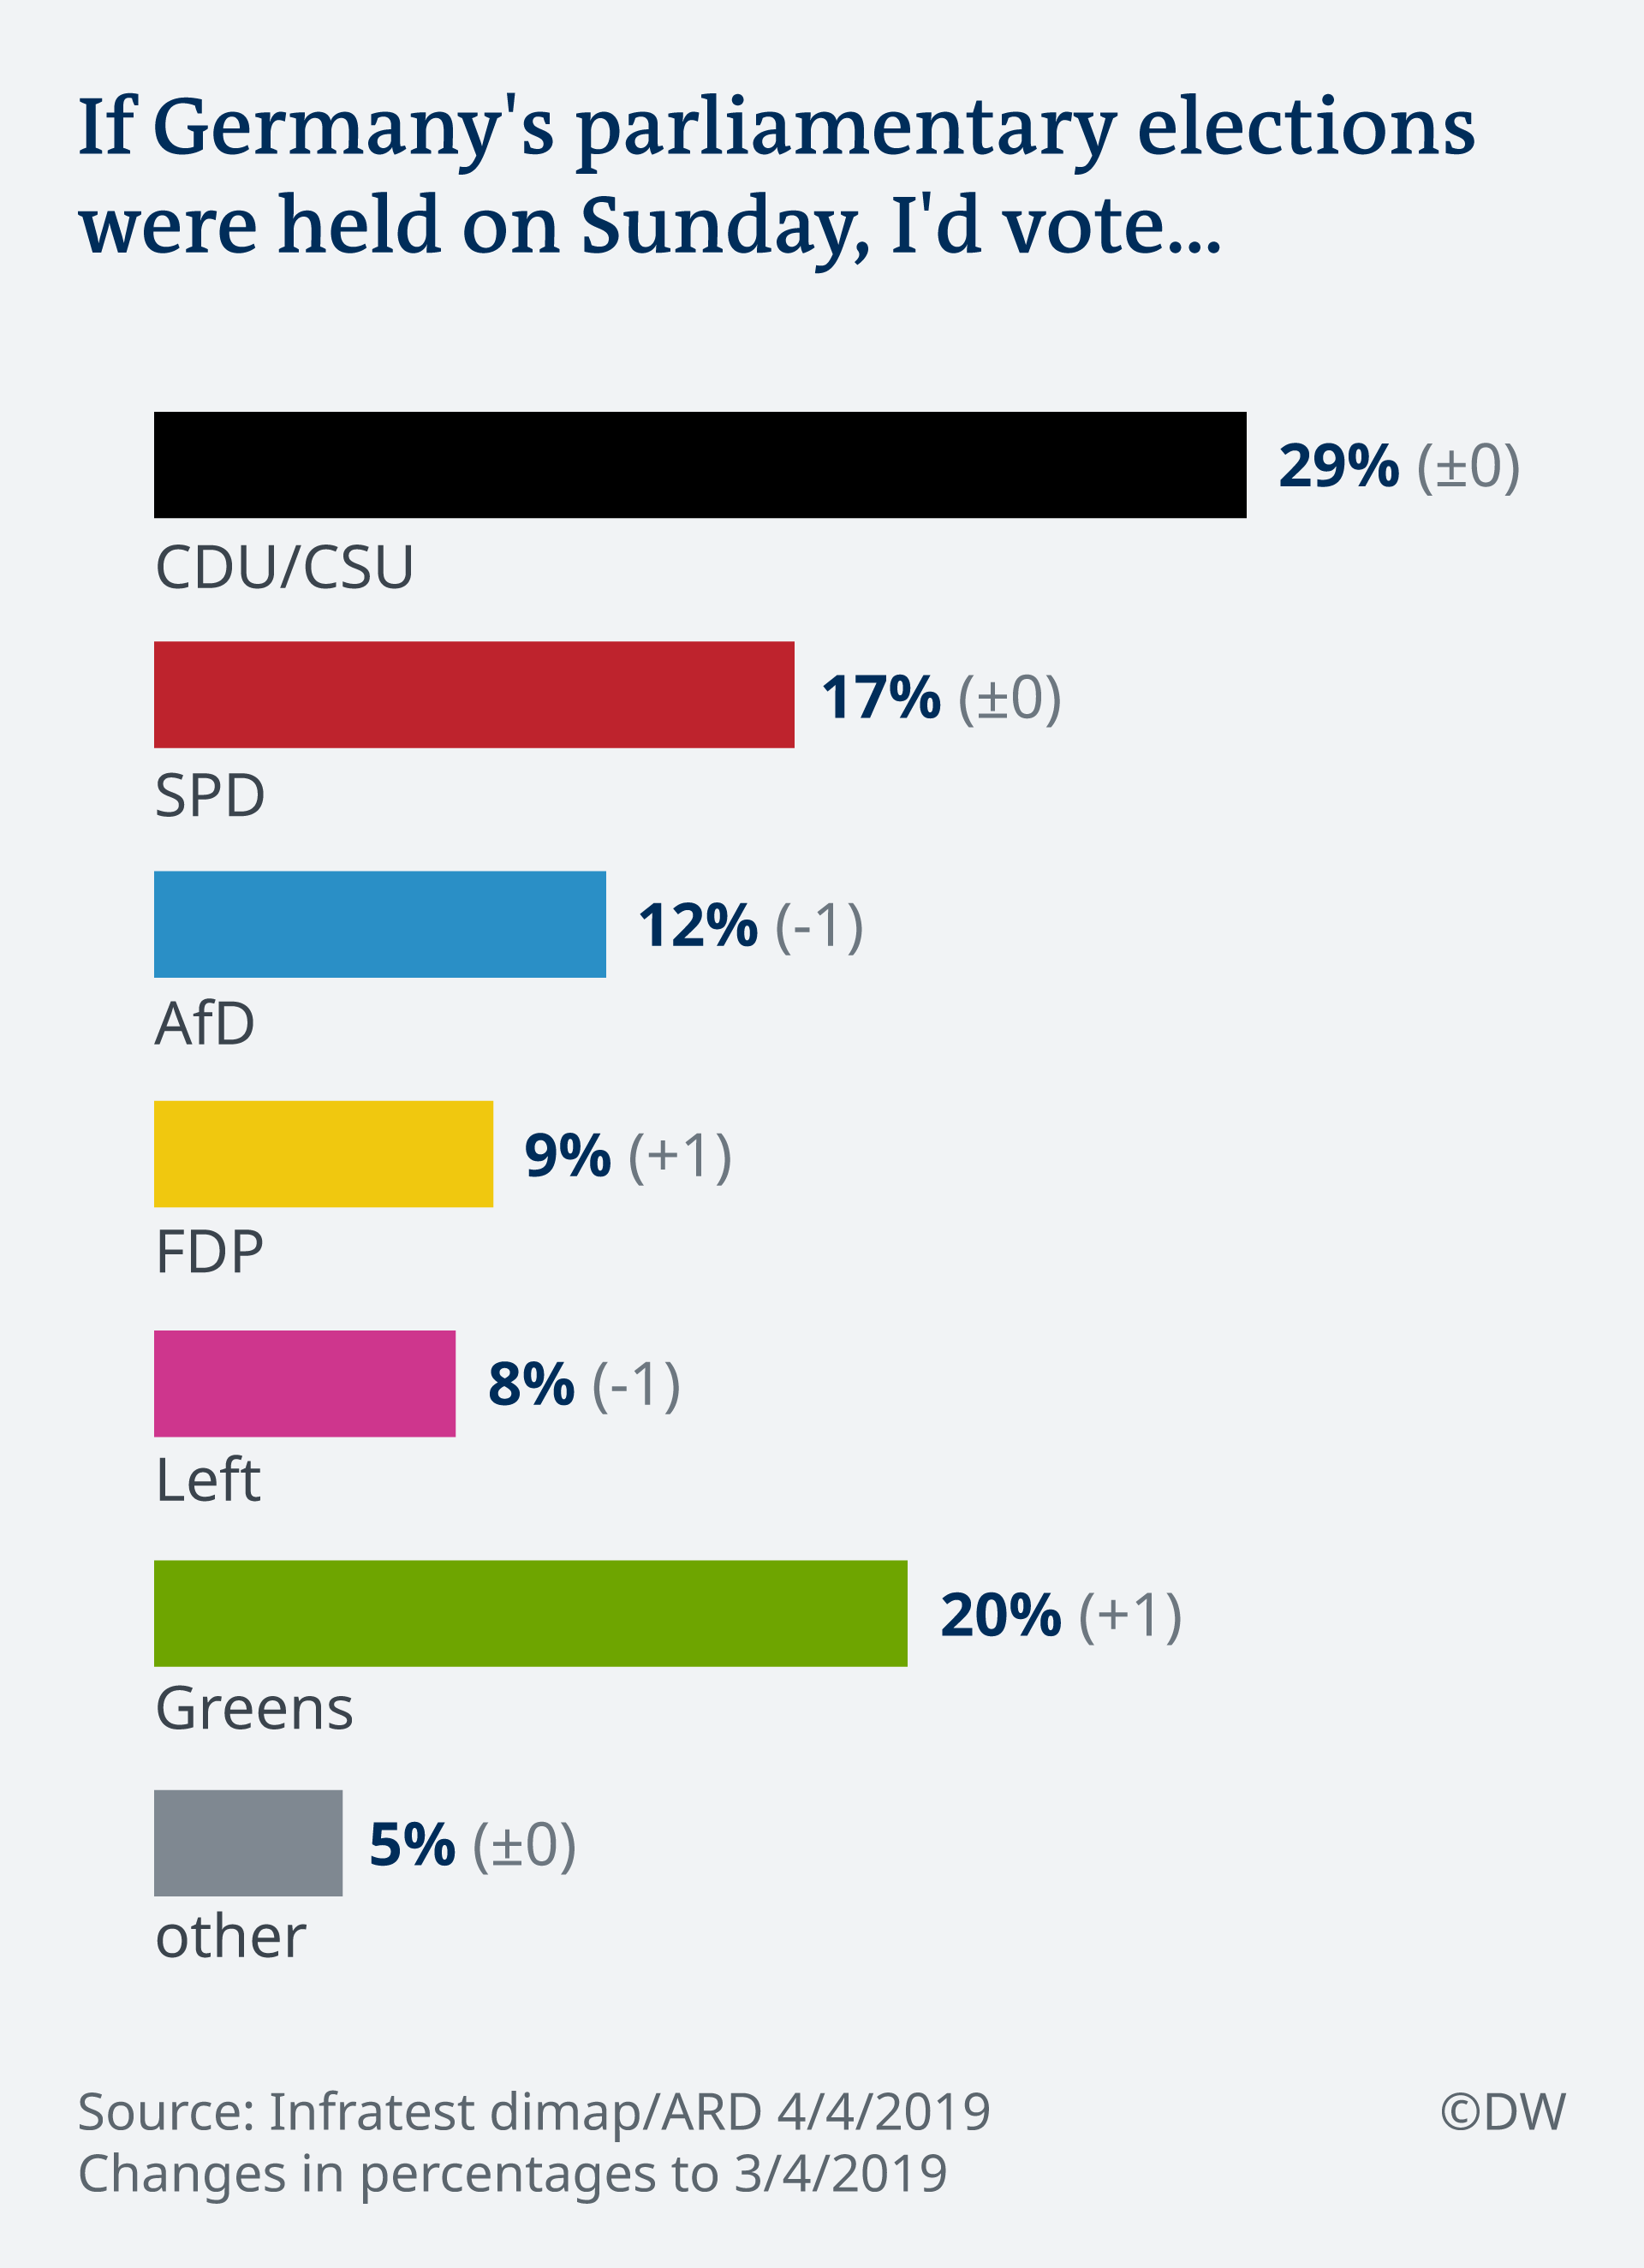 Infographic showing how Germans would vote if elections were held Sunday